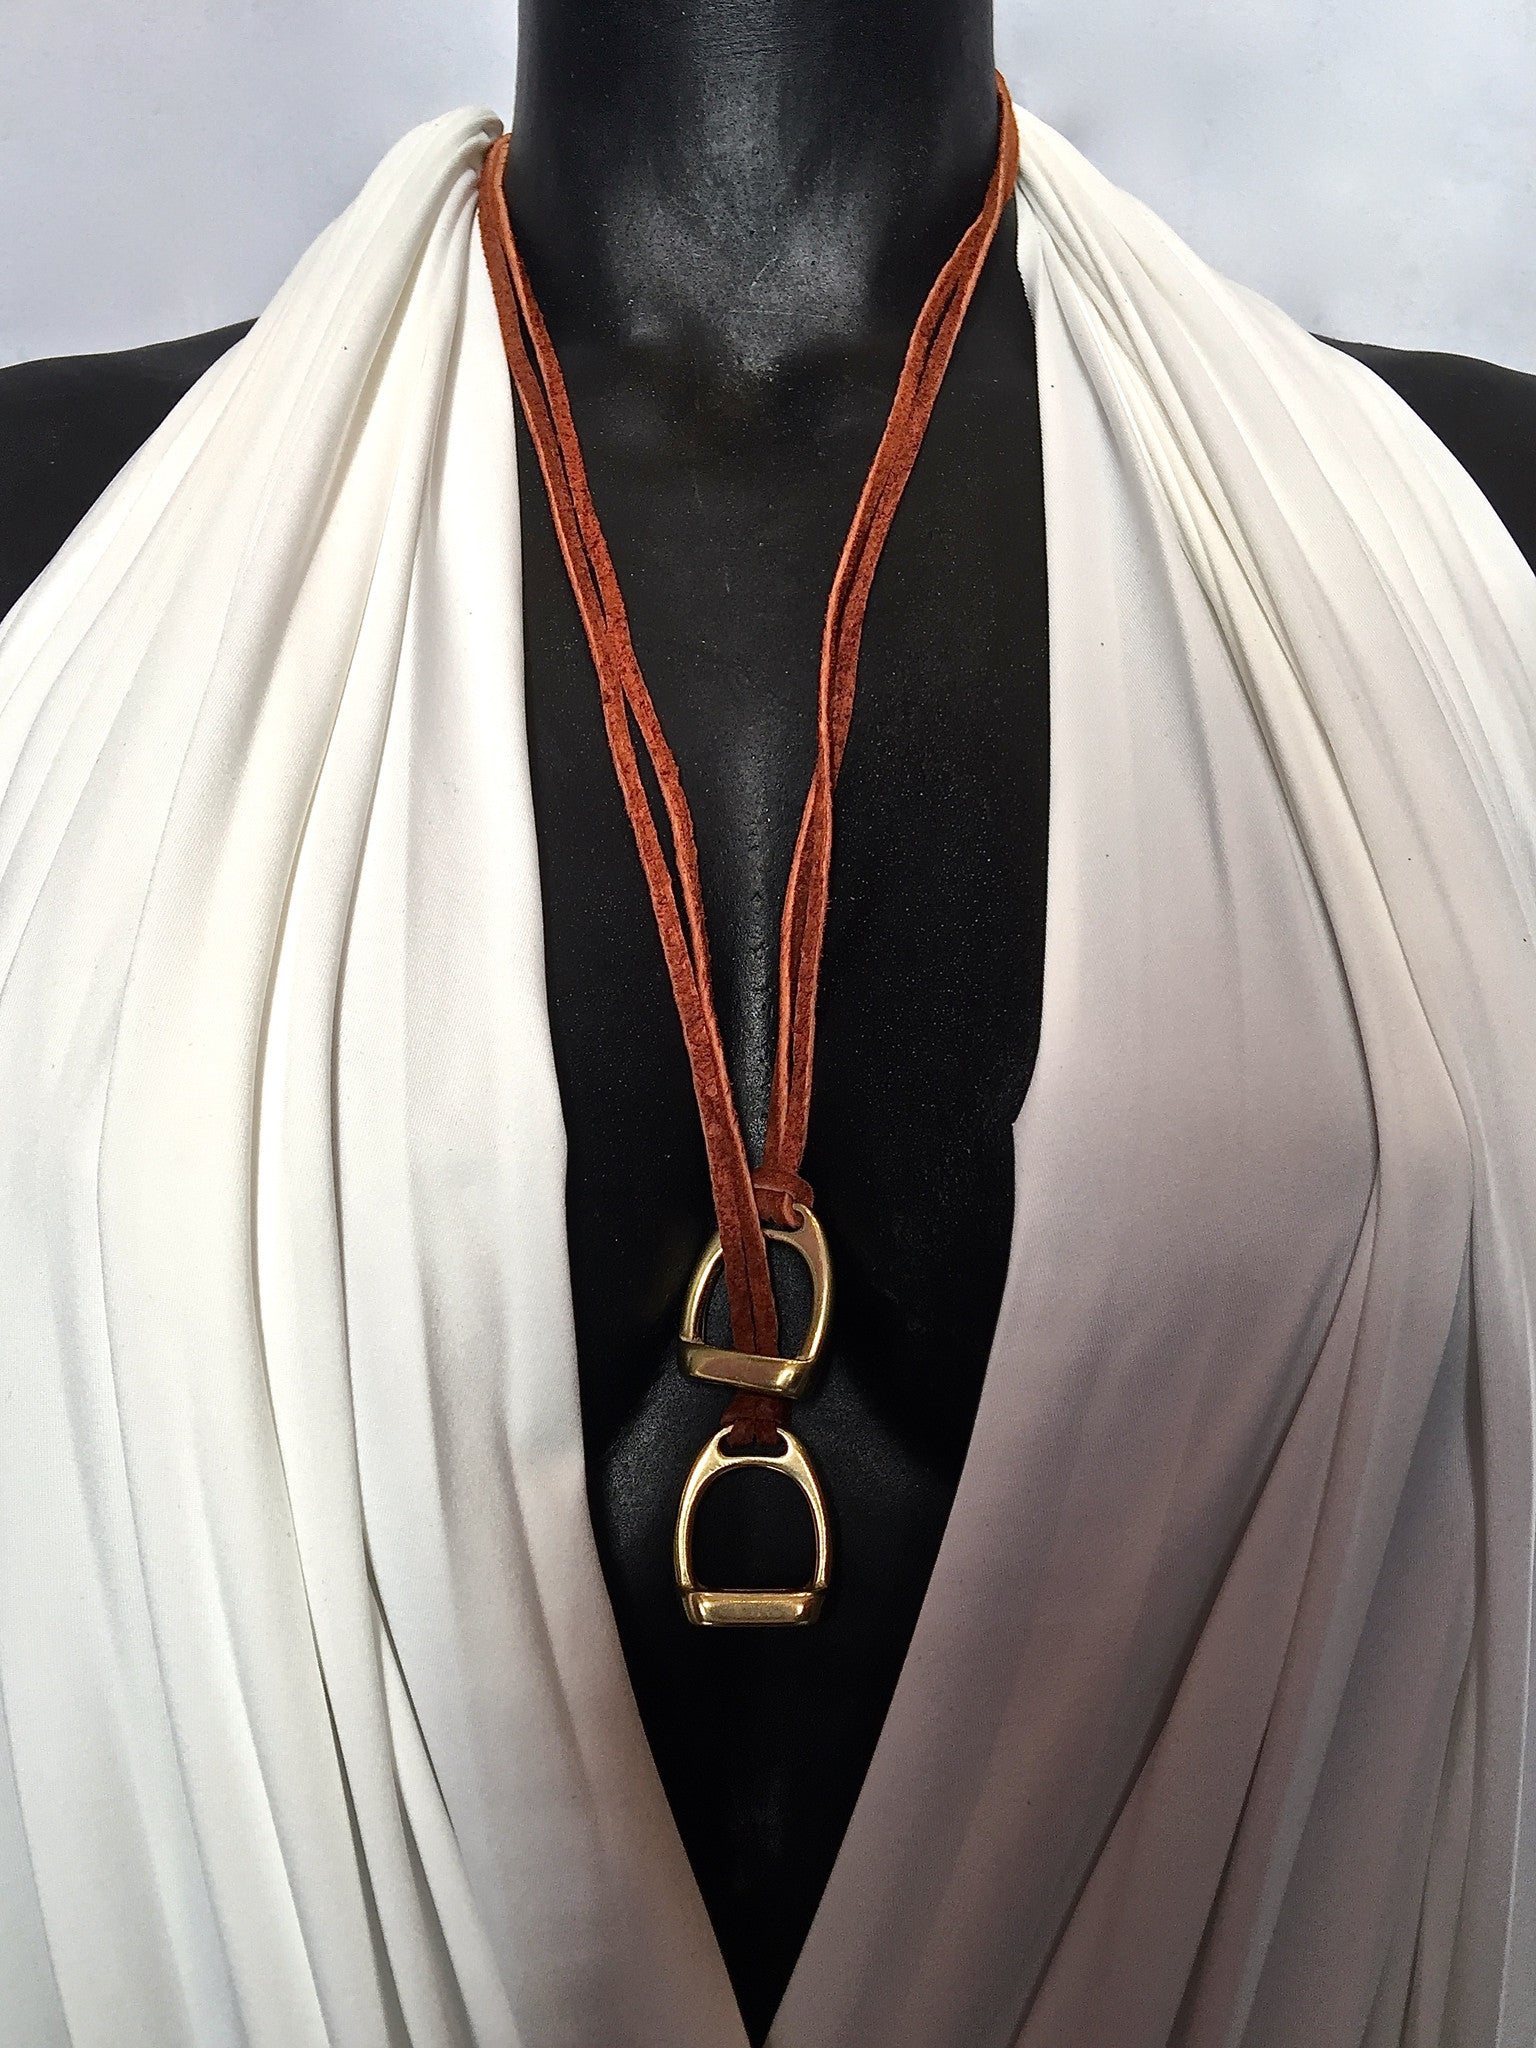 Double Stirrup Suede Necklace by nyet jewelry.